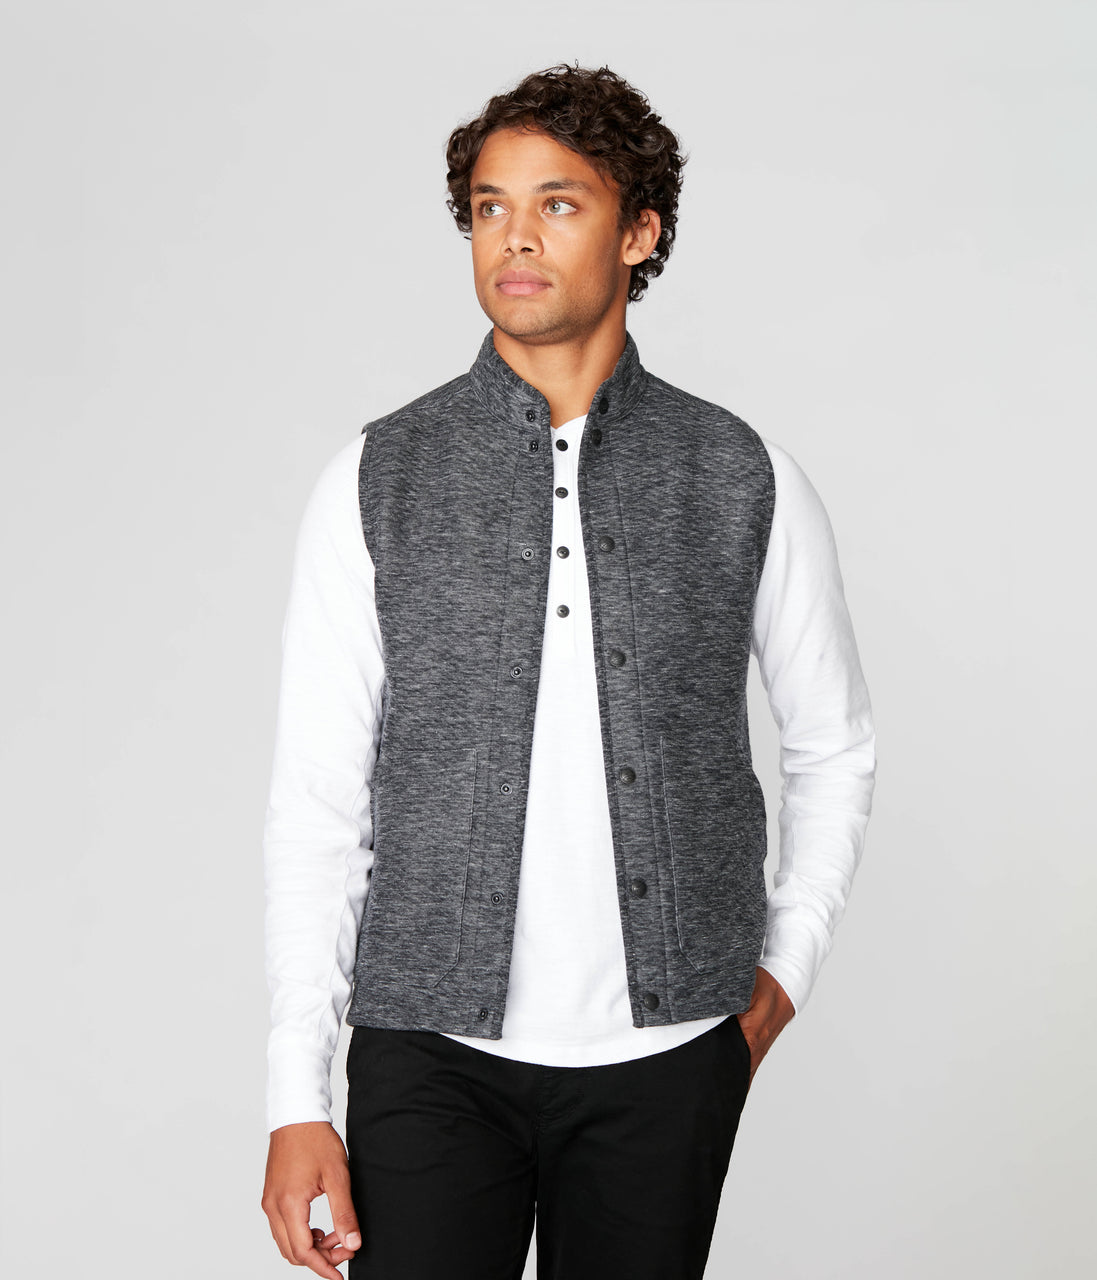 Twill Quilt Jacquard Fuji Shirt Jac Vest - Charcoal Heather - Good Man Brand - Twill Quilt Jacquard Fuji Shirt Jac Vest - Charcoal Heather